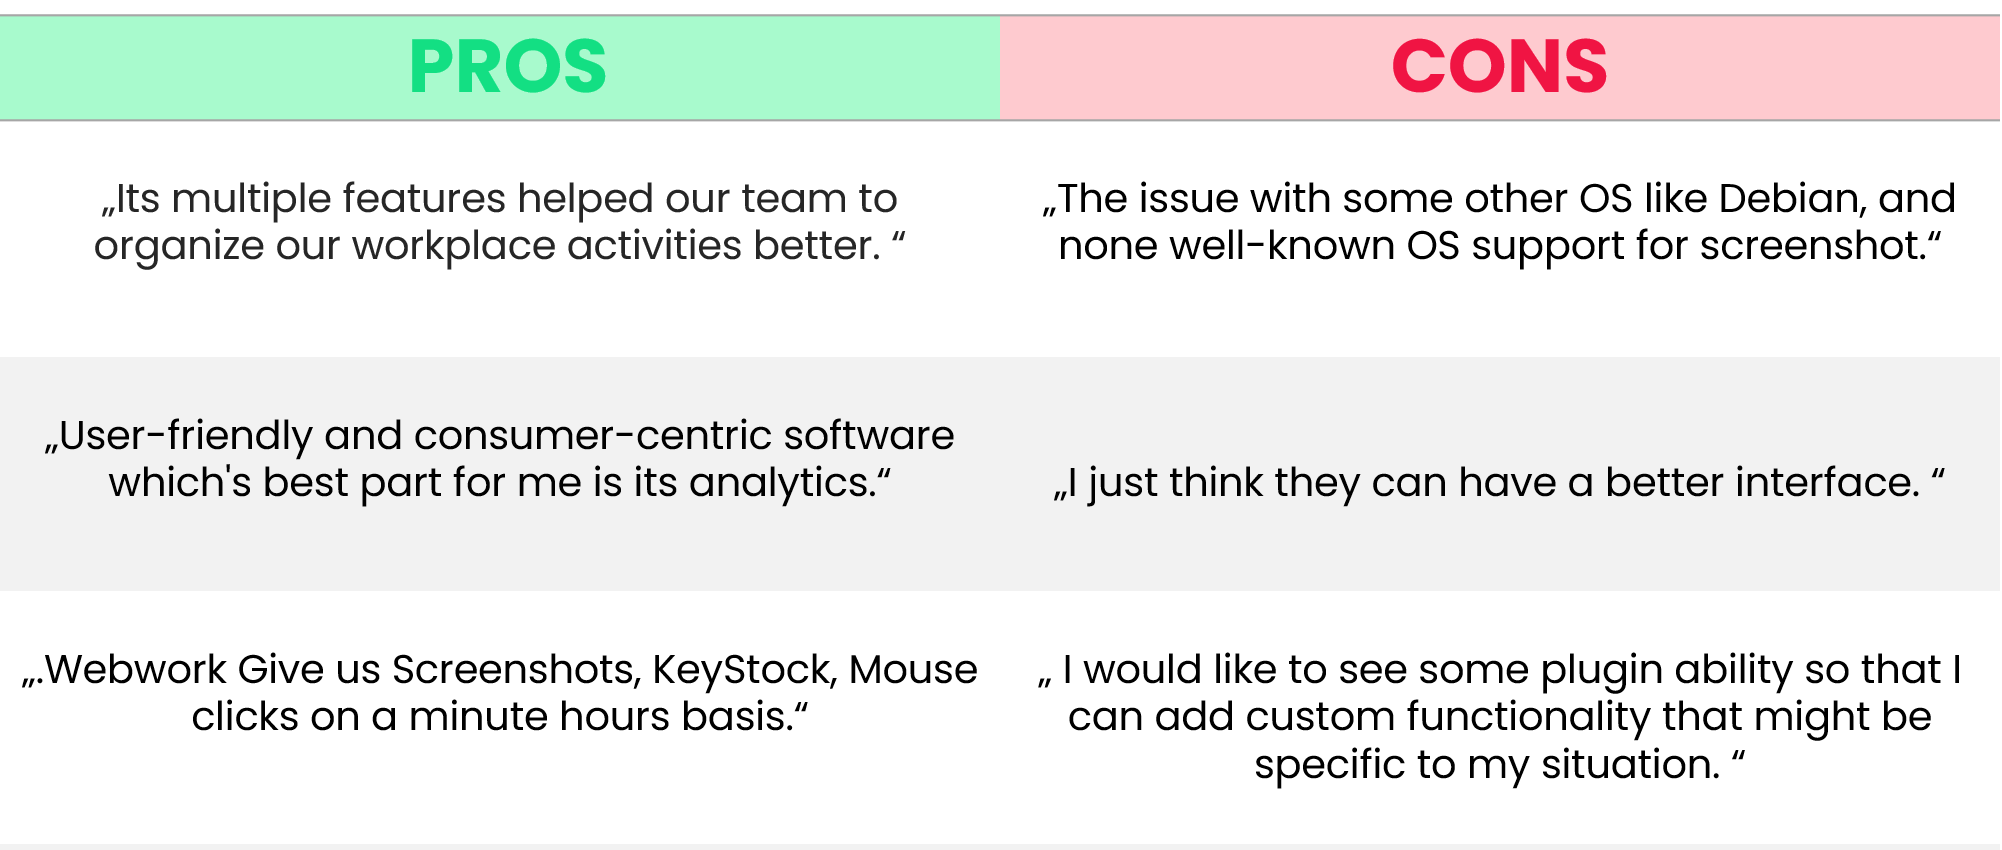 webwork pros and cons